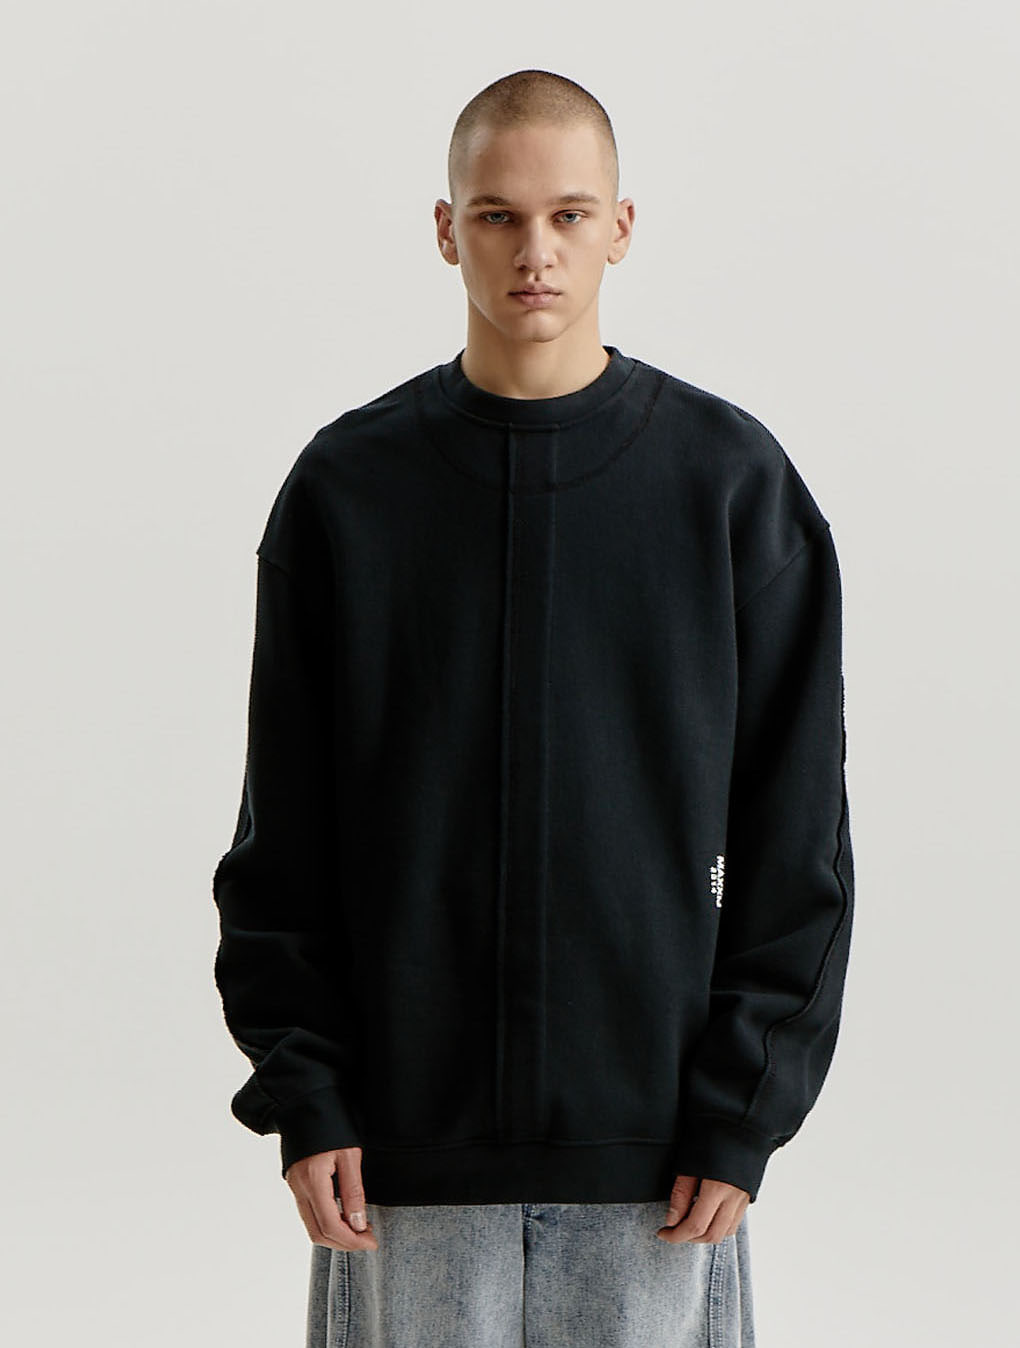 Black Signature Raw Edge Line Sweatshirt